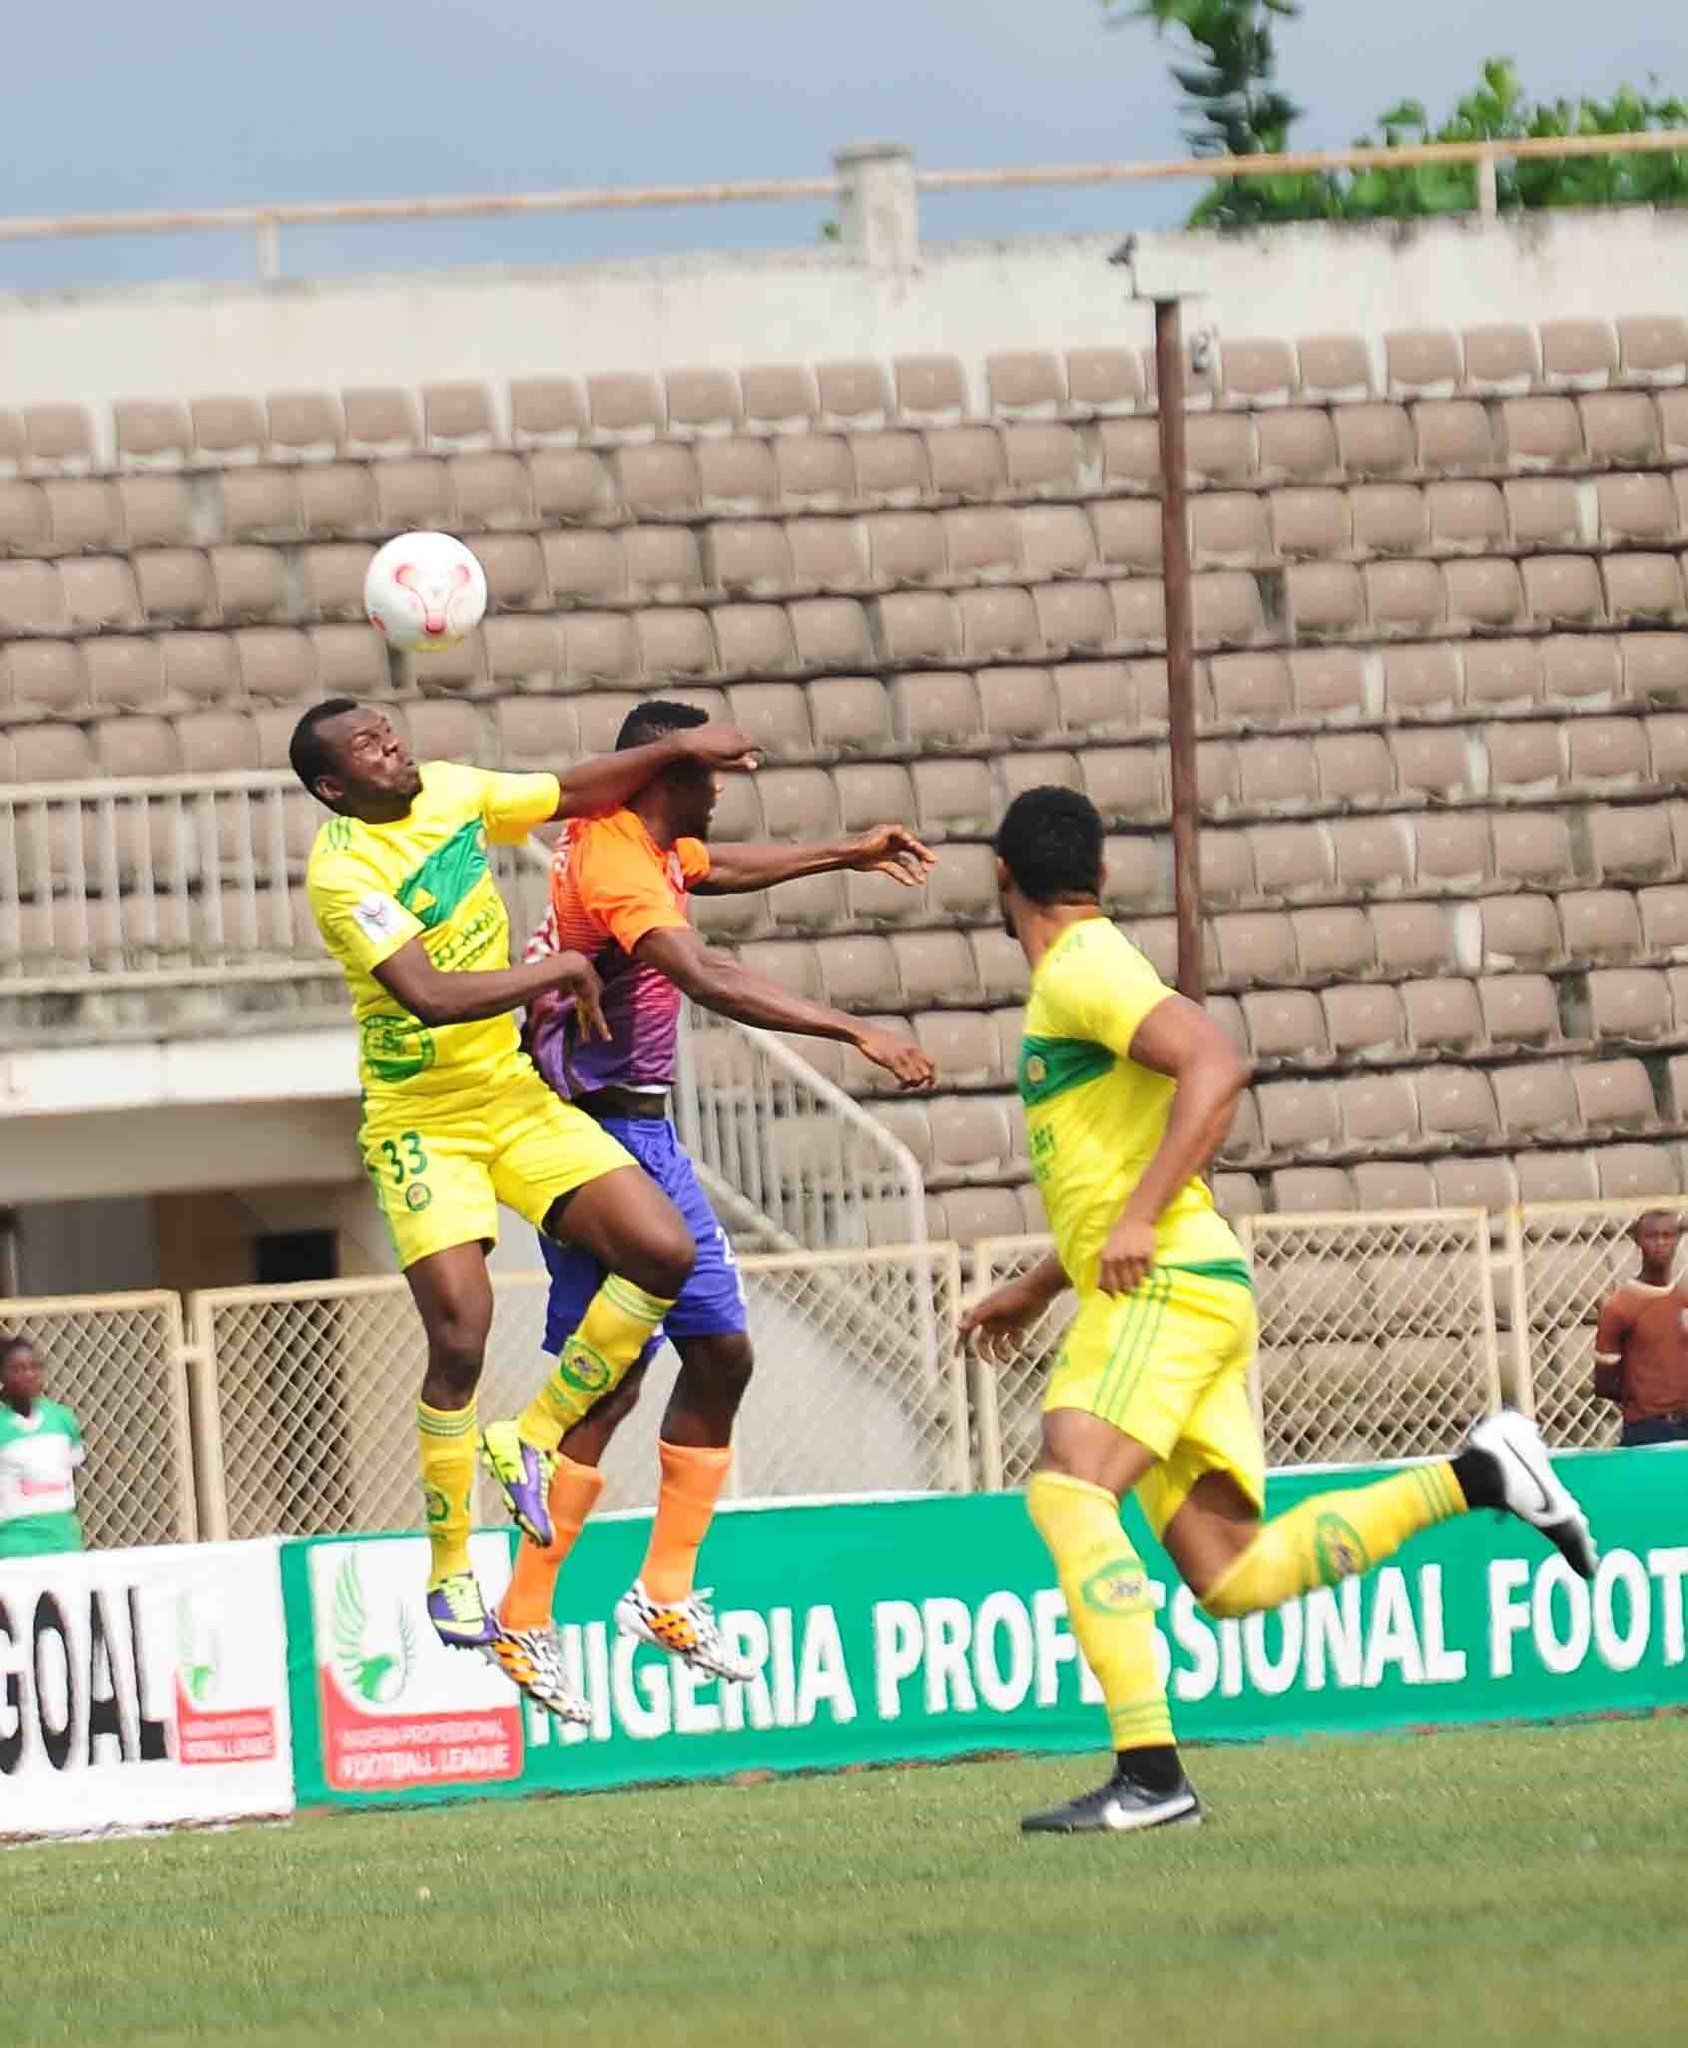 NPFL: 3SC Pip Enyimba As Sunshine Win; Rangers Fall, MFM Game Shifted